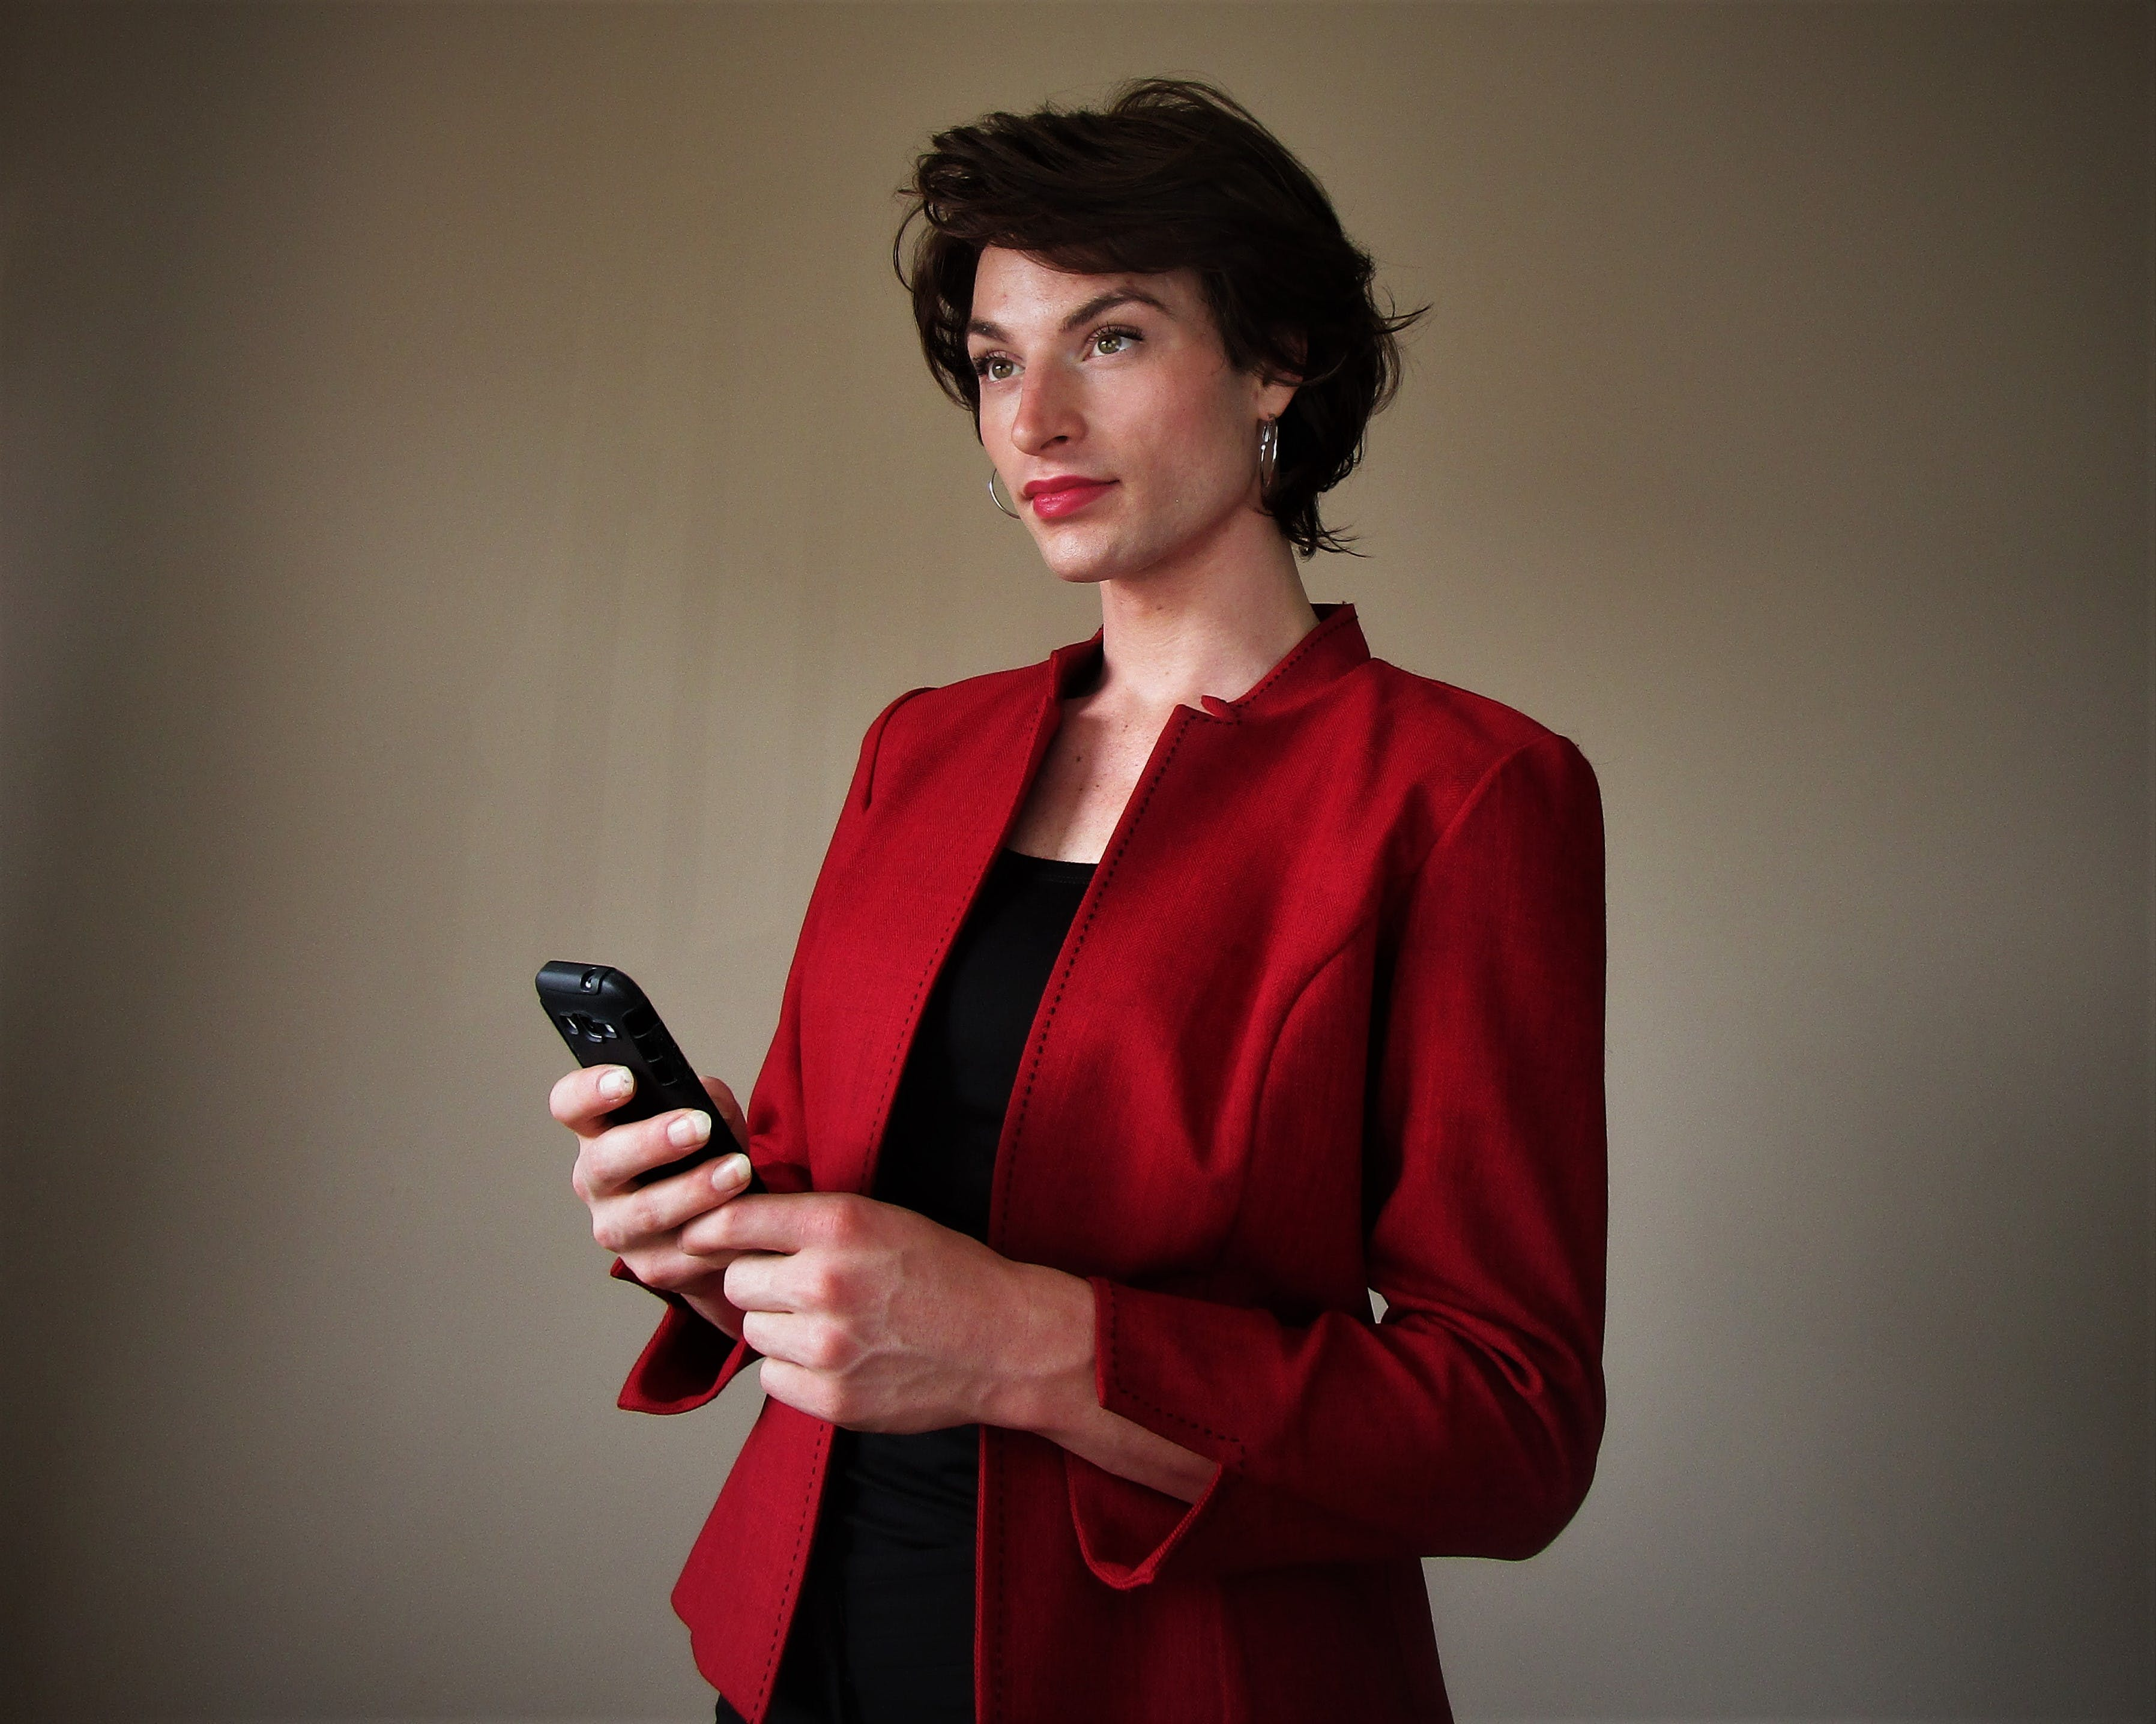 Woman Wearing Red Blazer Holding Smartphone